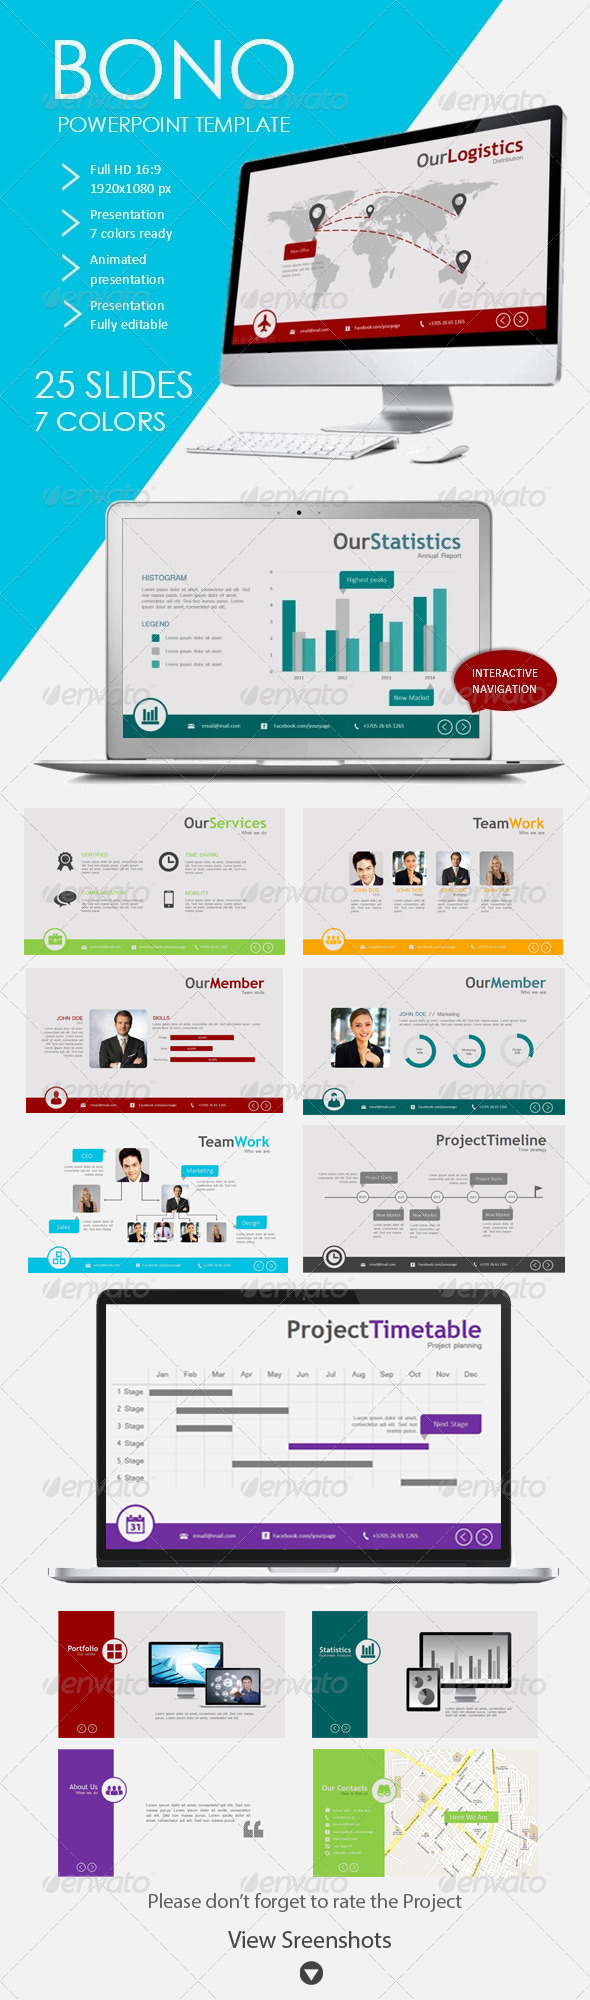 GraphicRiver Bono Powerpoint Template for Business 5089407